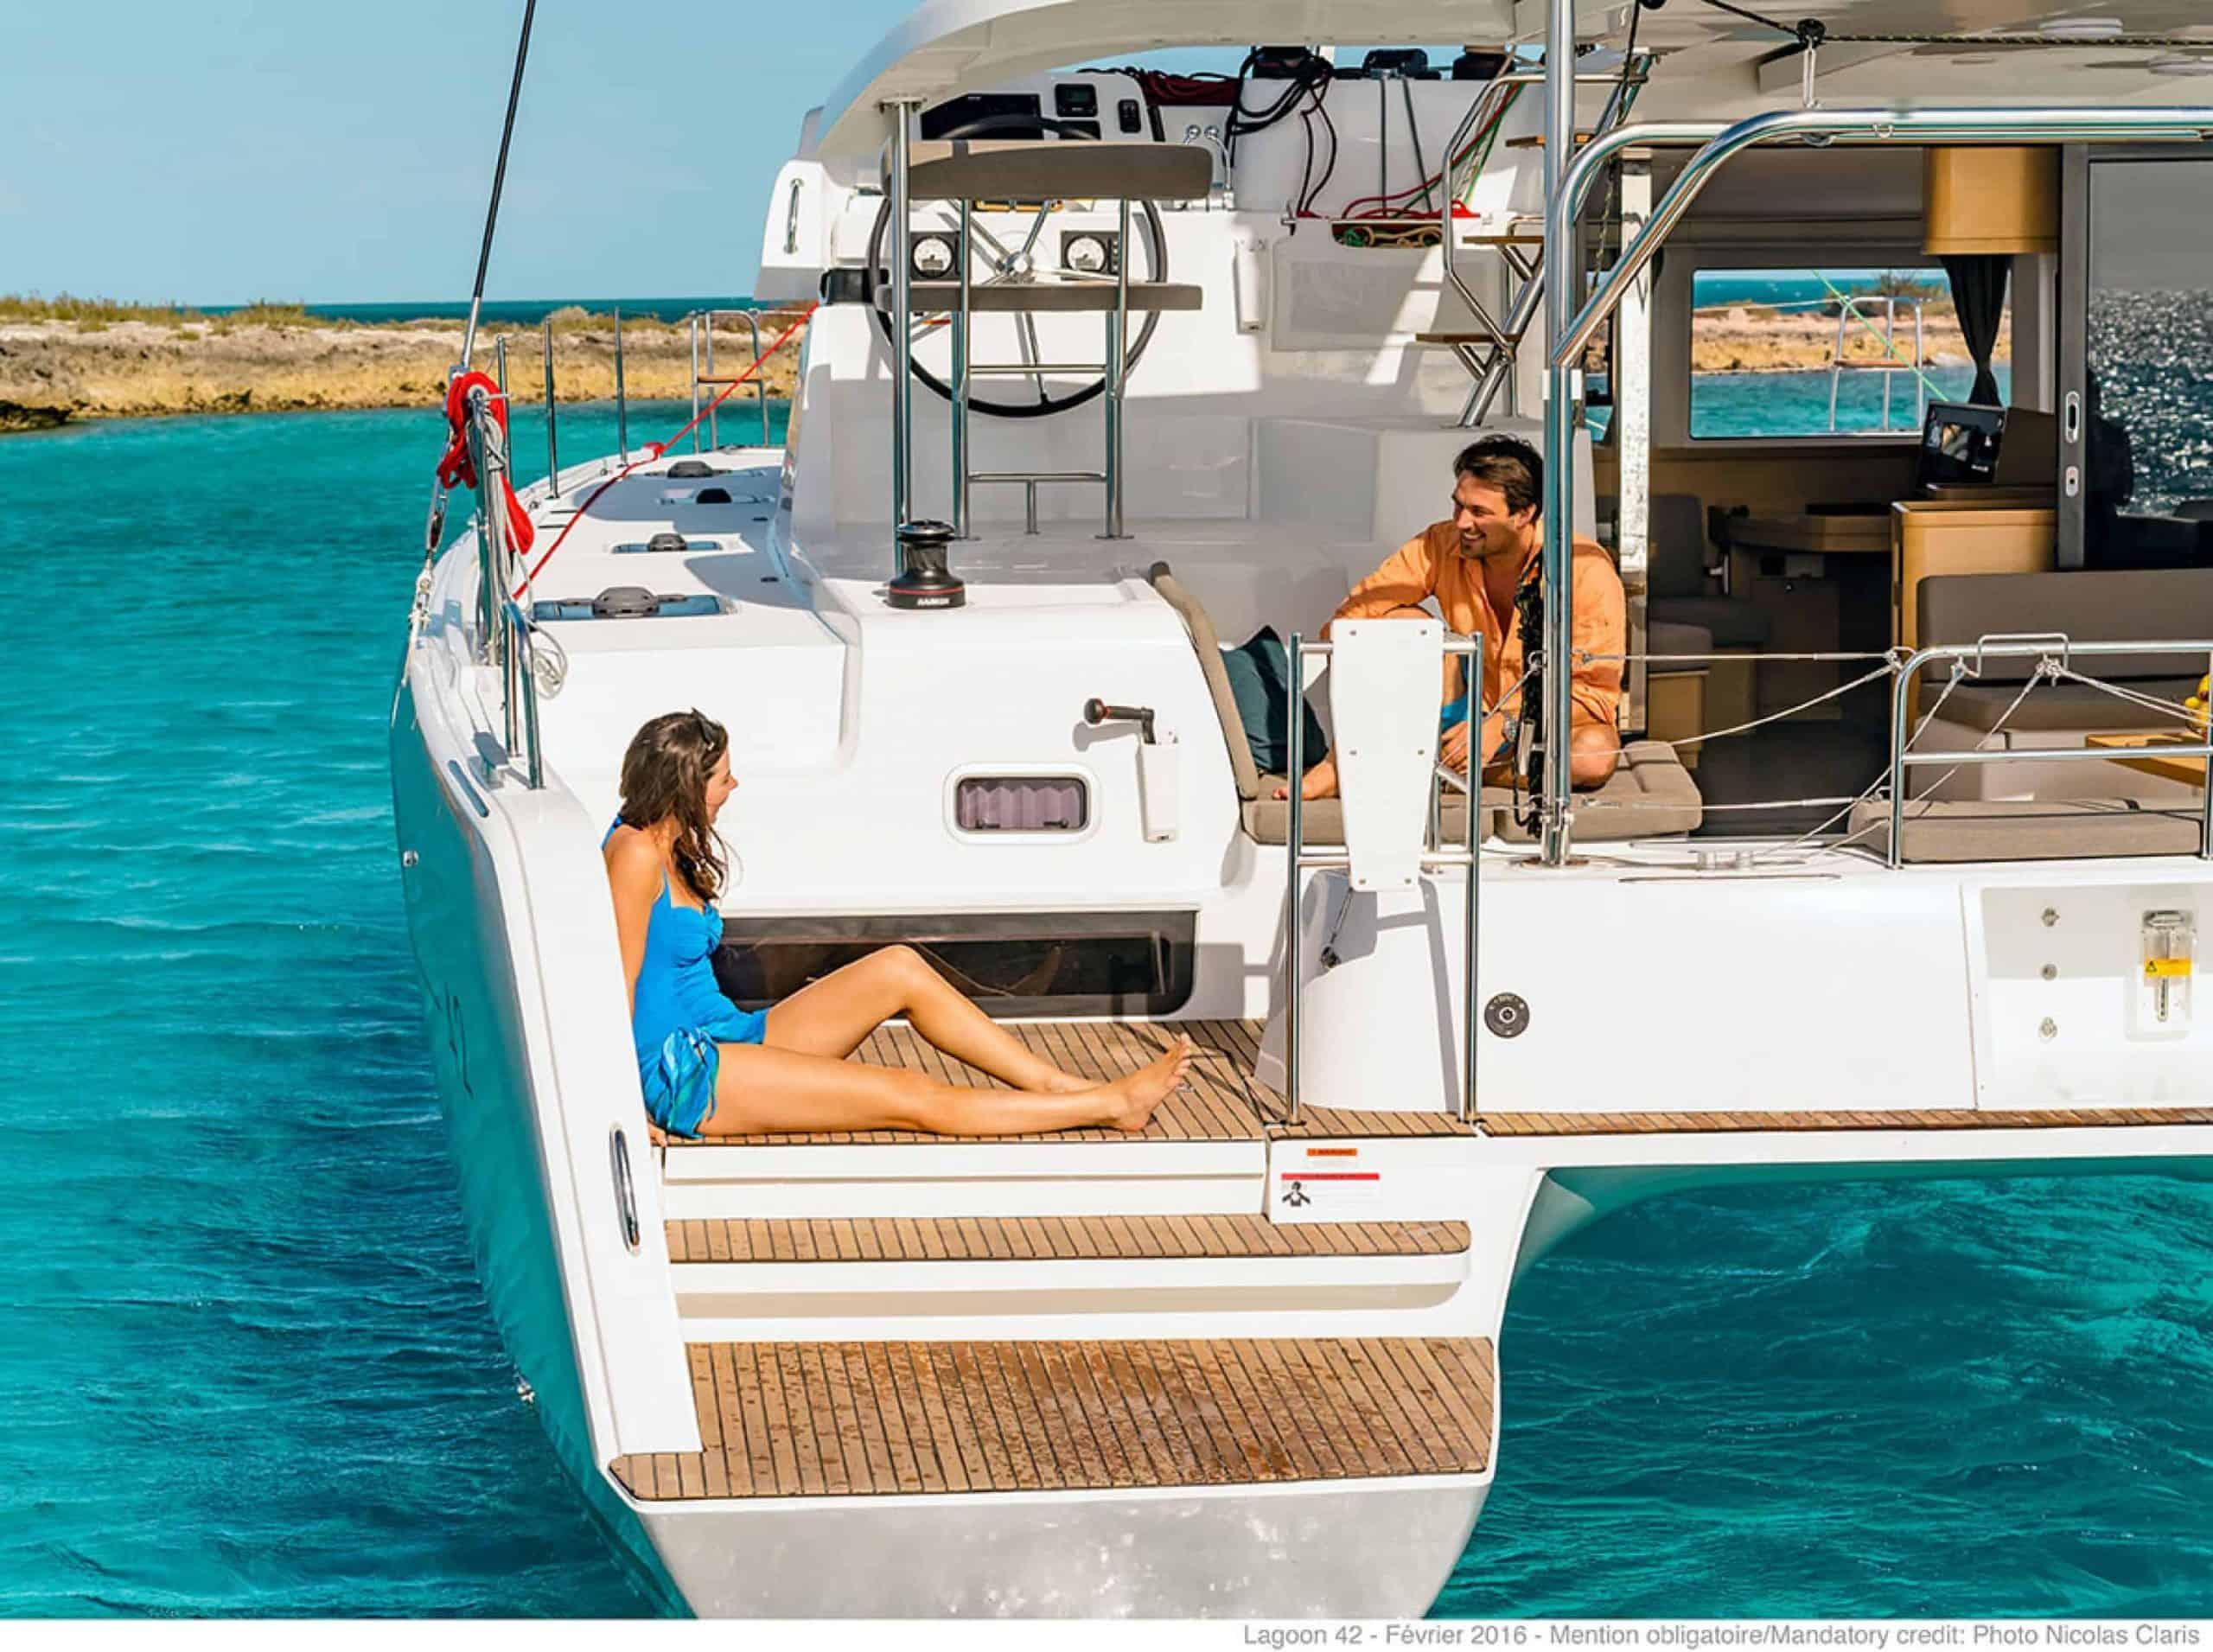 Couple having a chat on the rear of the lagoon 42